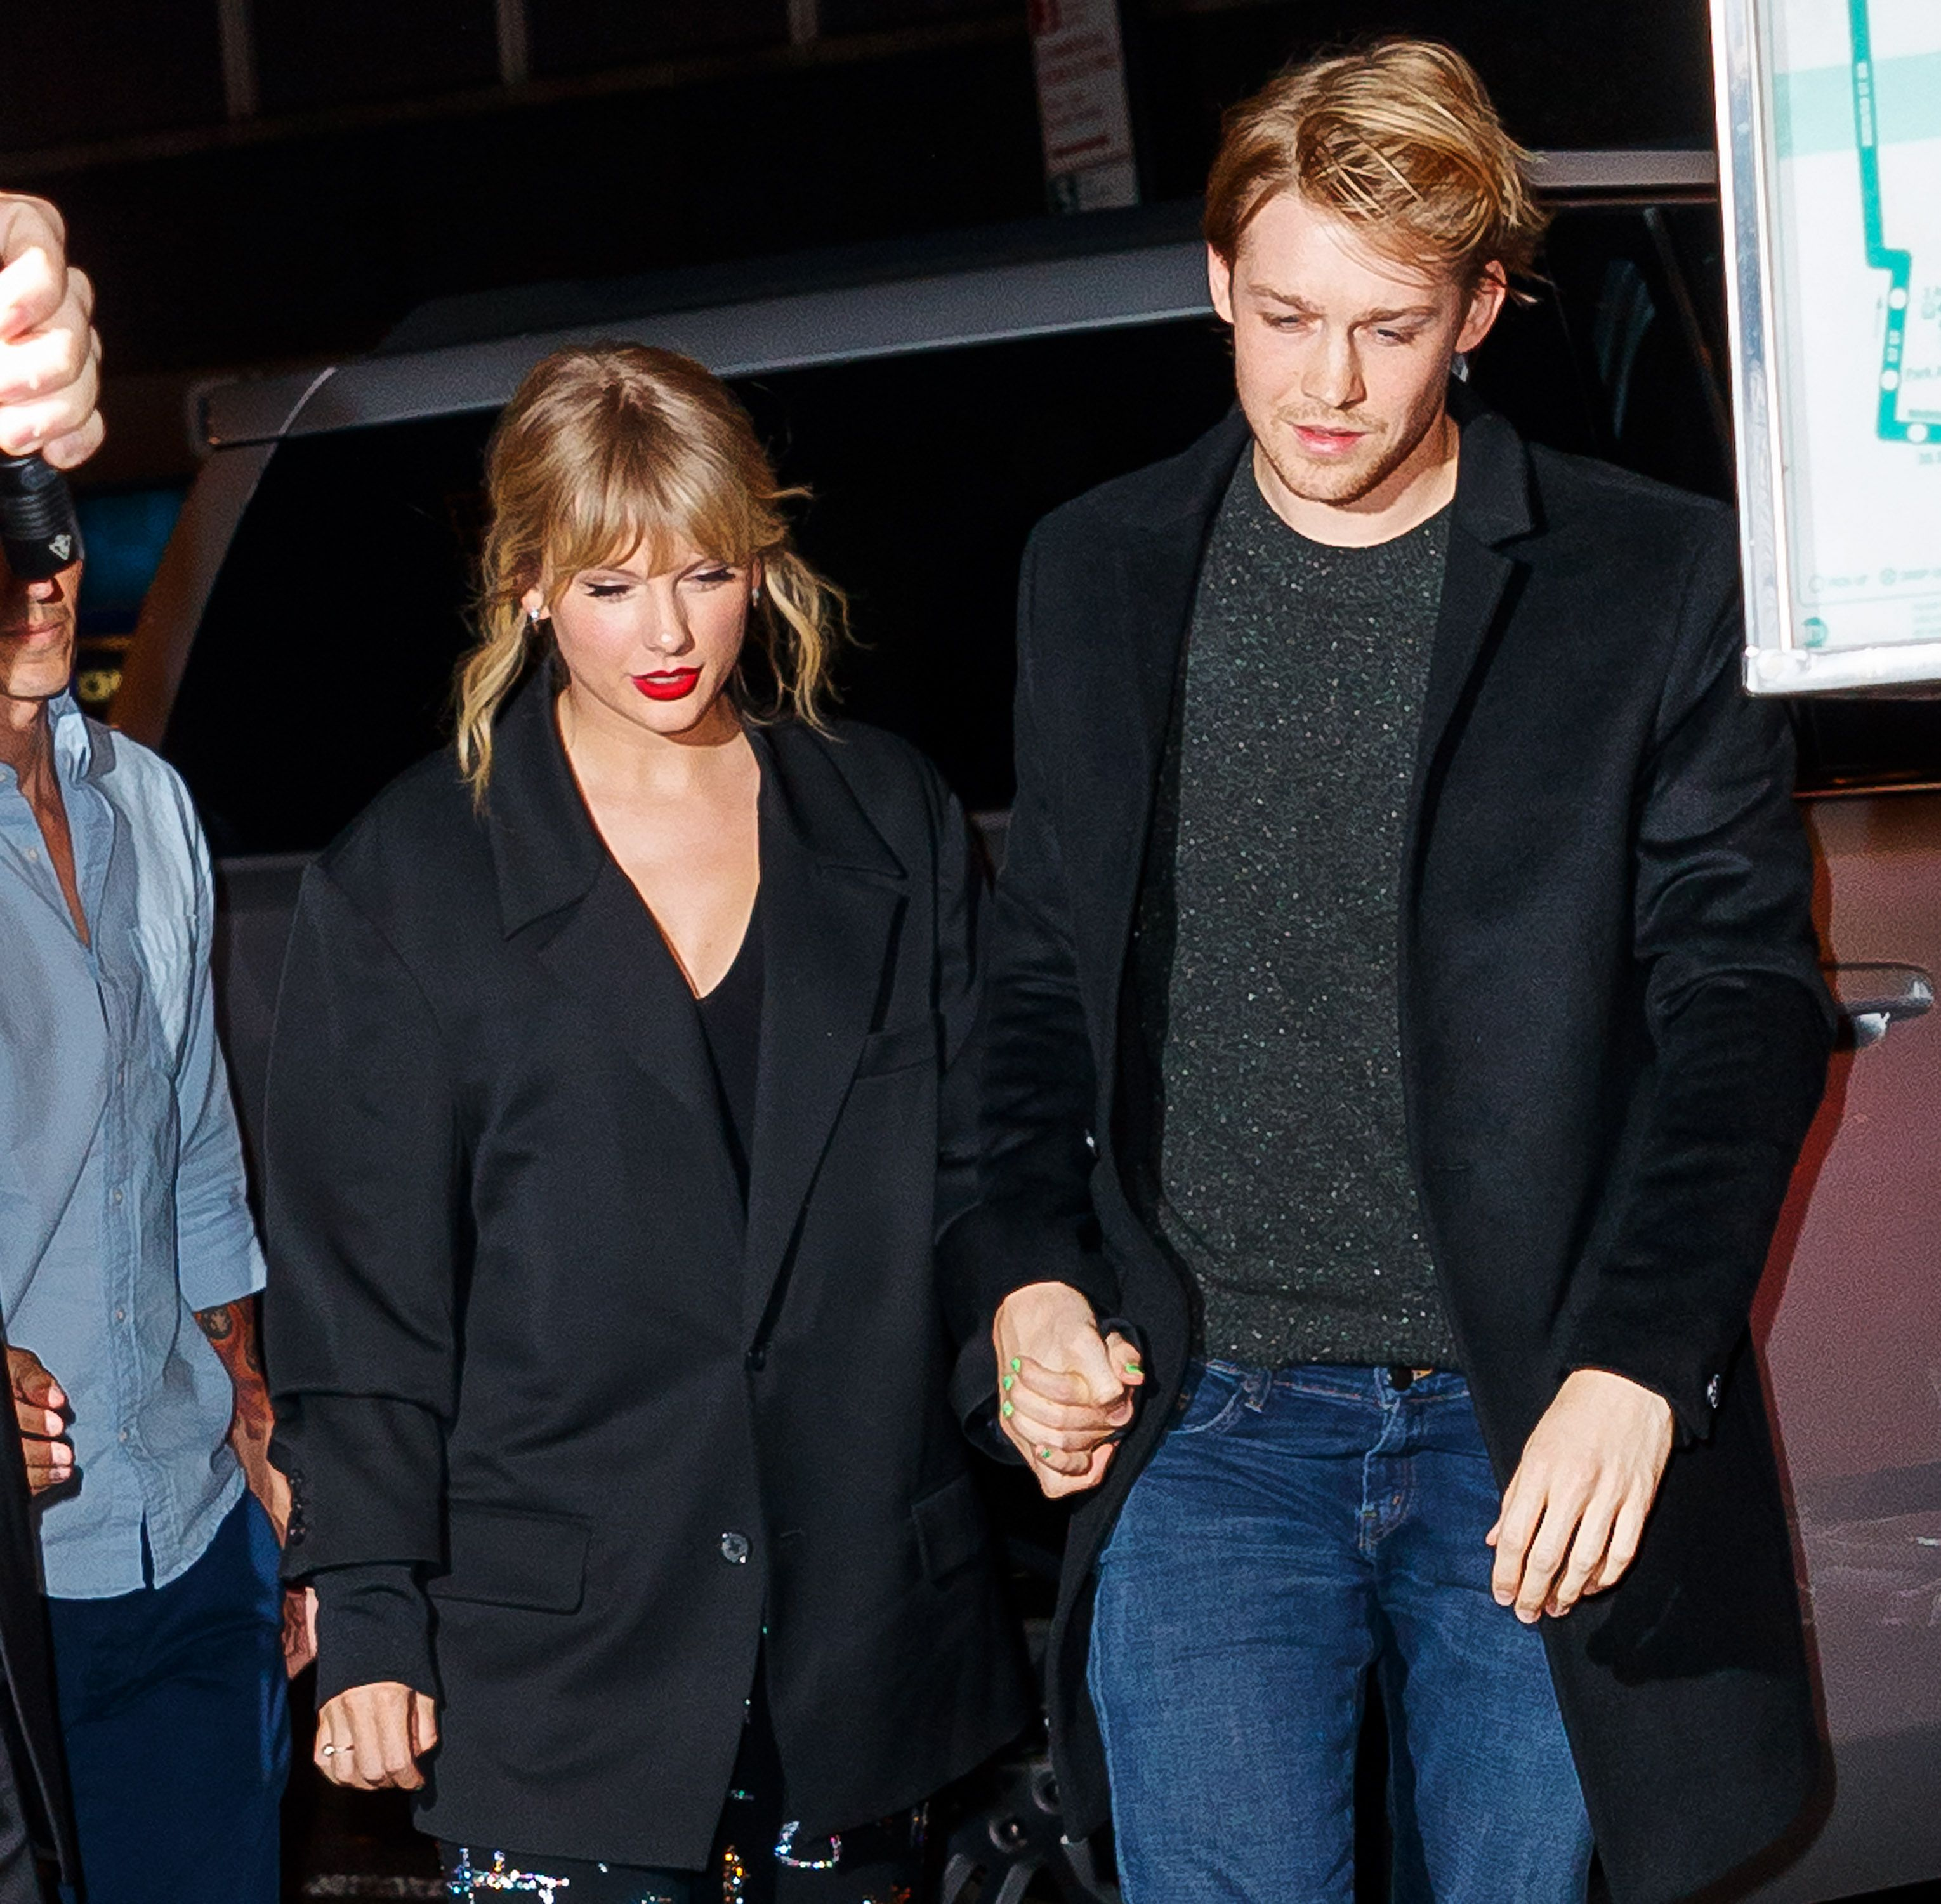 Taylor Swift Explains Why She Fell in Love With Joe Alwyn in Her Miss Americana Documentary